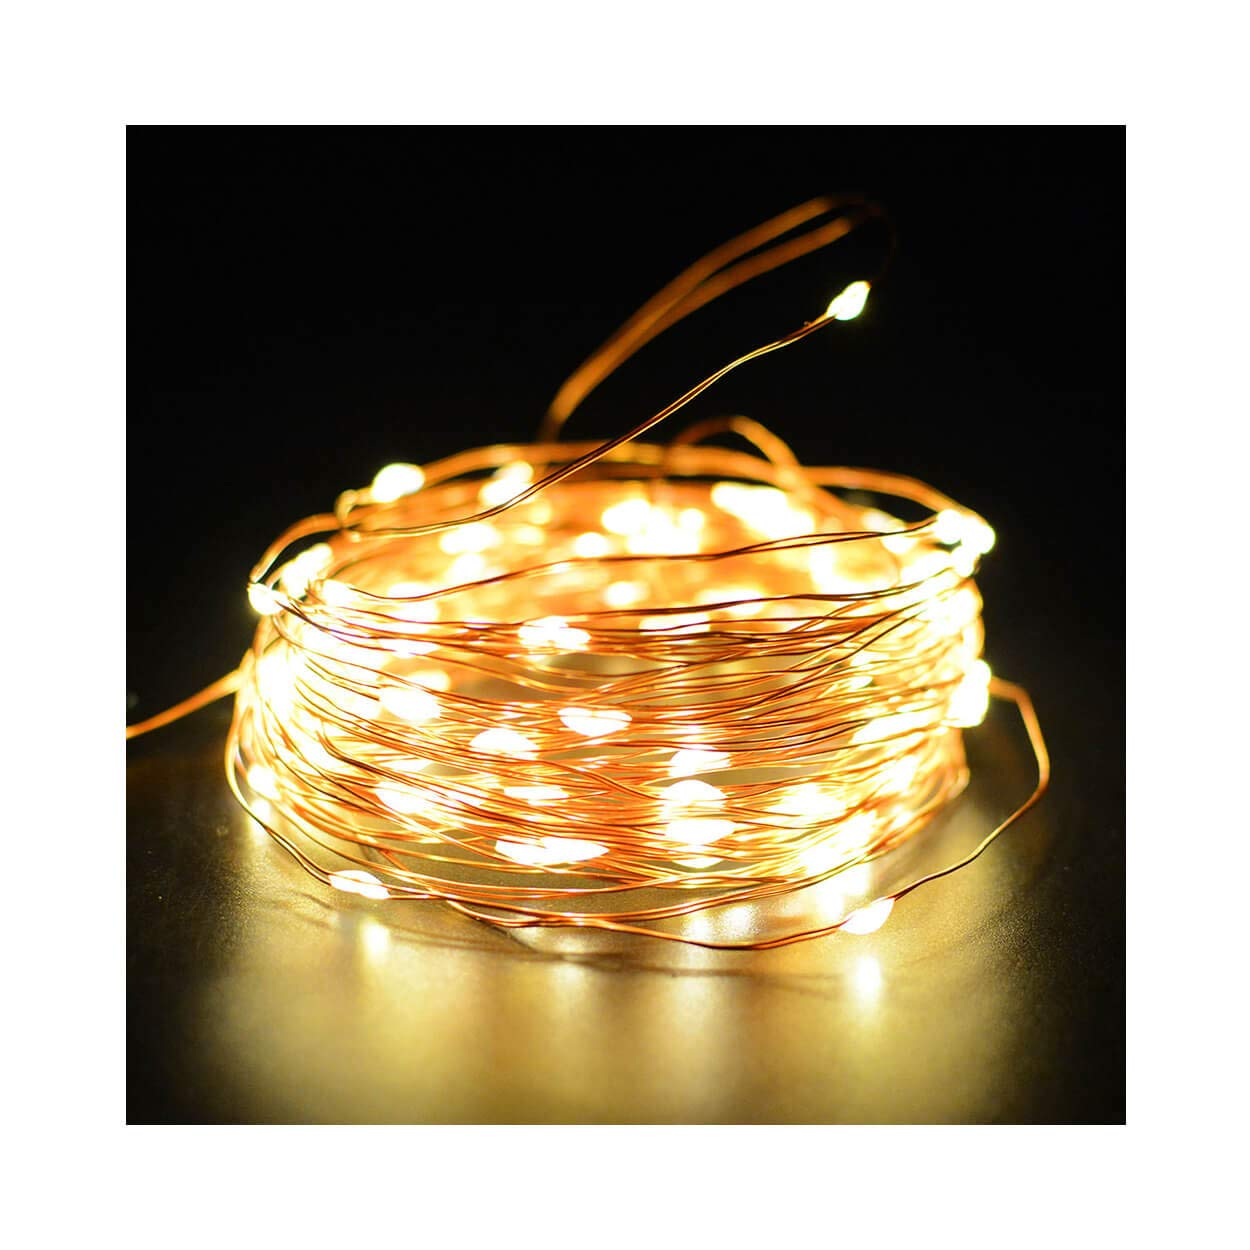 33Ft 10M LED String Lights Fairy Lights 100 LEDs Strings for Home Wall Garden Patio Wedding Bedroom Christmas Outdoor Xmas UL588 Approved (Warm White)